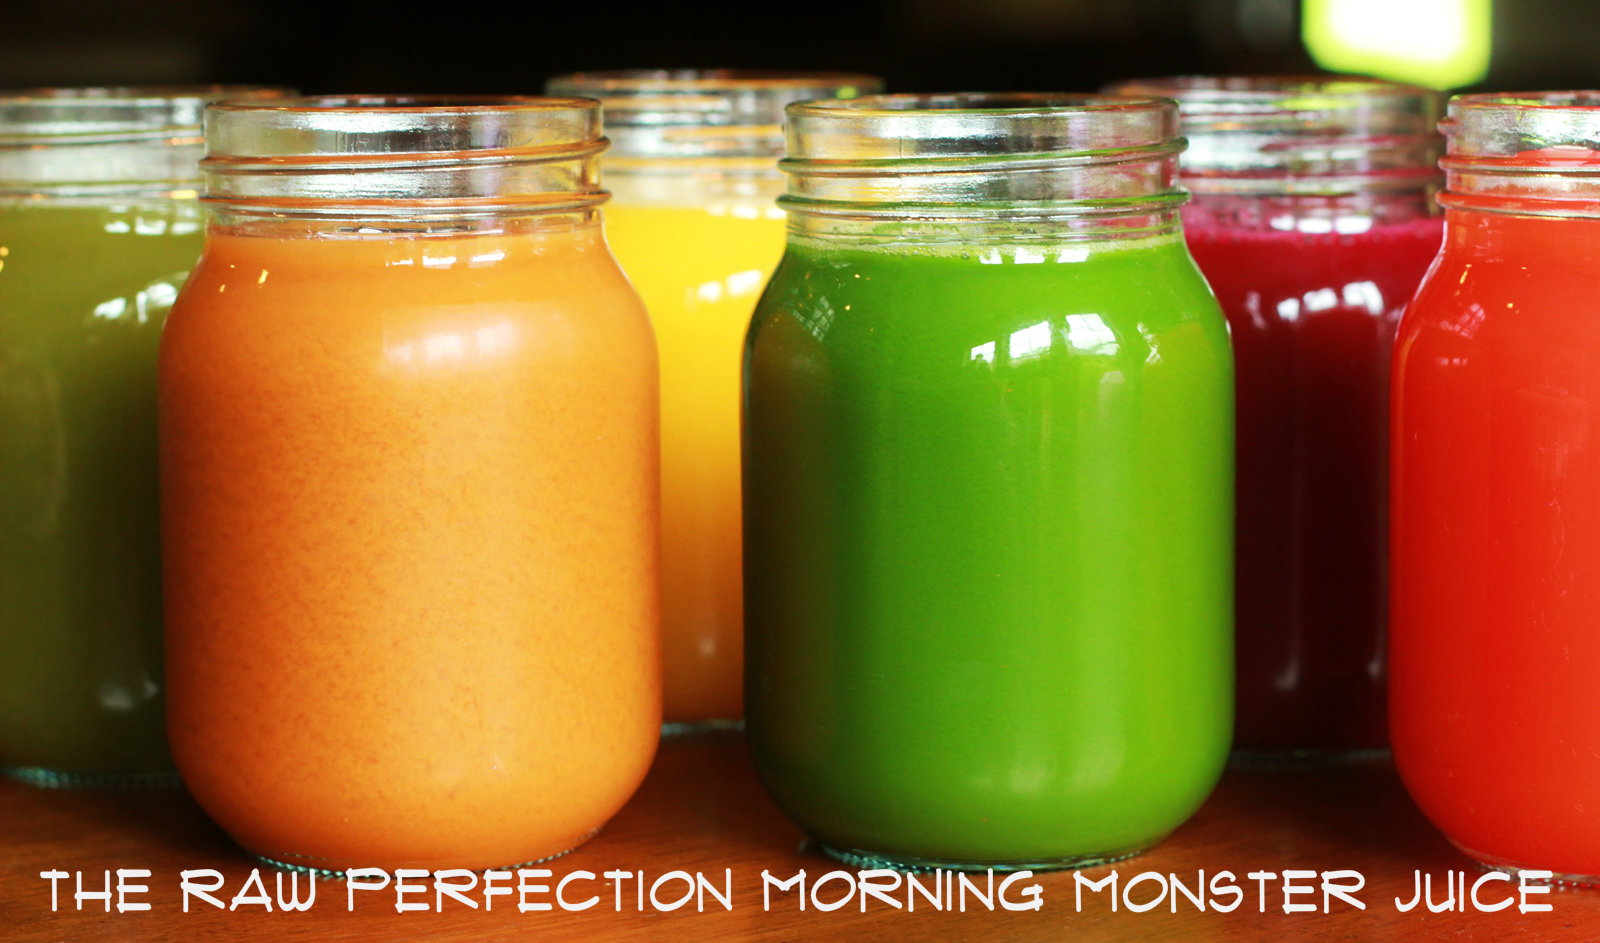 The Raw Perfection Morning Monster Juice